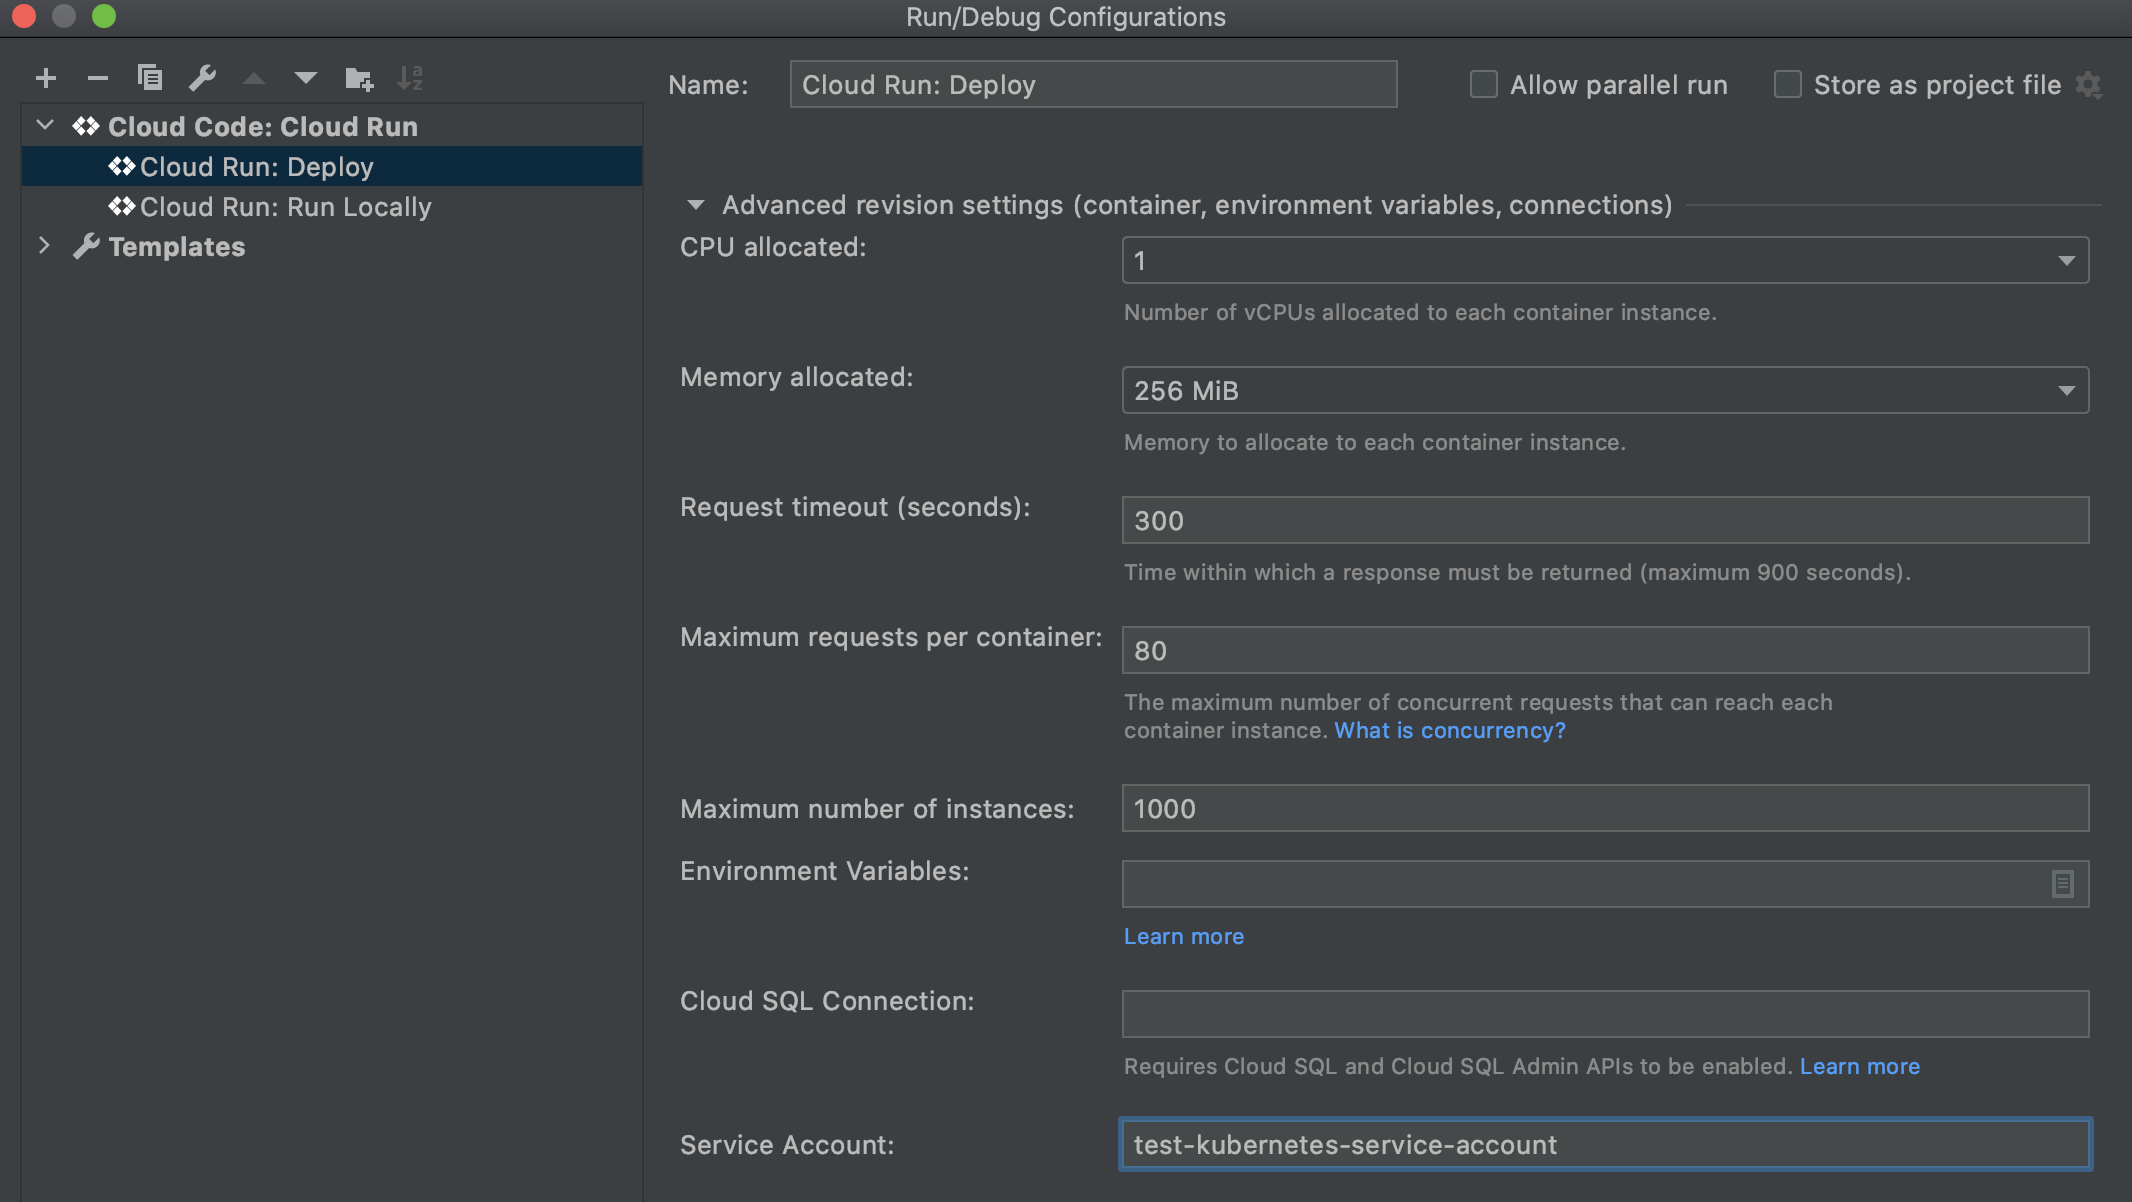 Advanced revision settings section expanded in Cloud Run: Deploy and Service Account field filled in with Kubernetes service account name